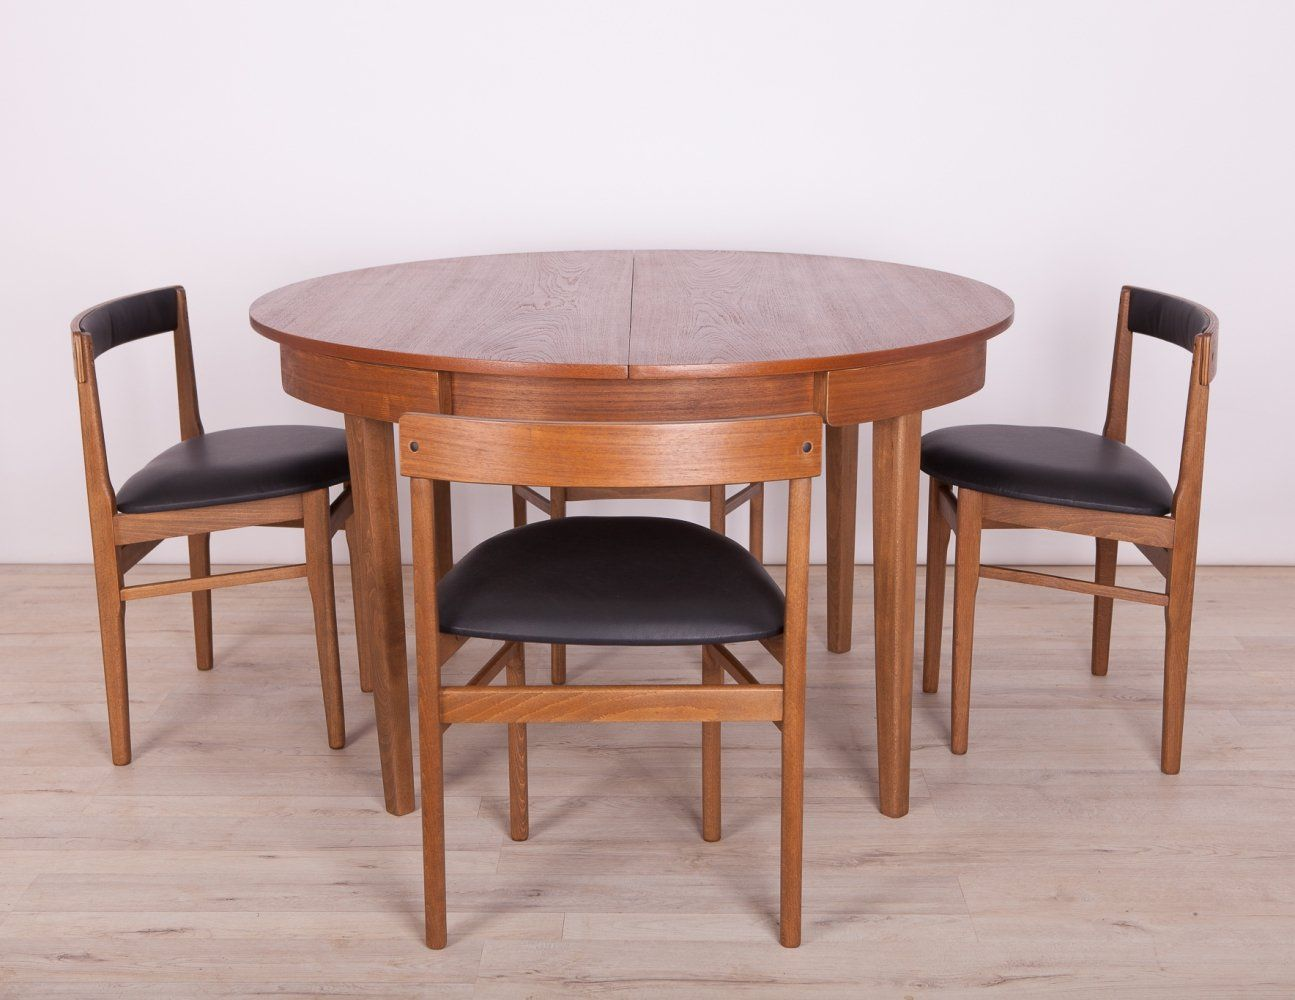 For Sale Mid Century Teak Dining Table Chairs From Mcintosh 1960s Dining Table Chairs Teak Dining Table Table And Chairs